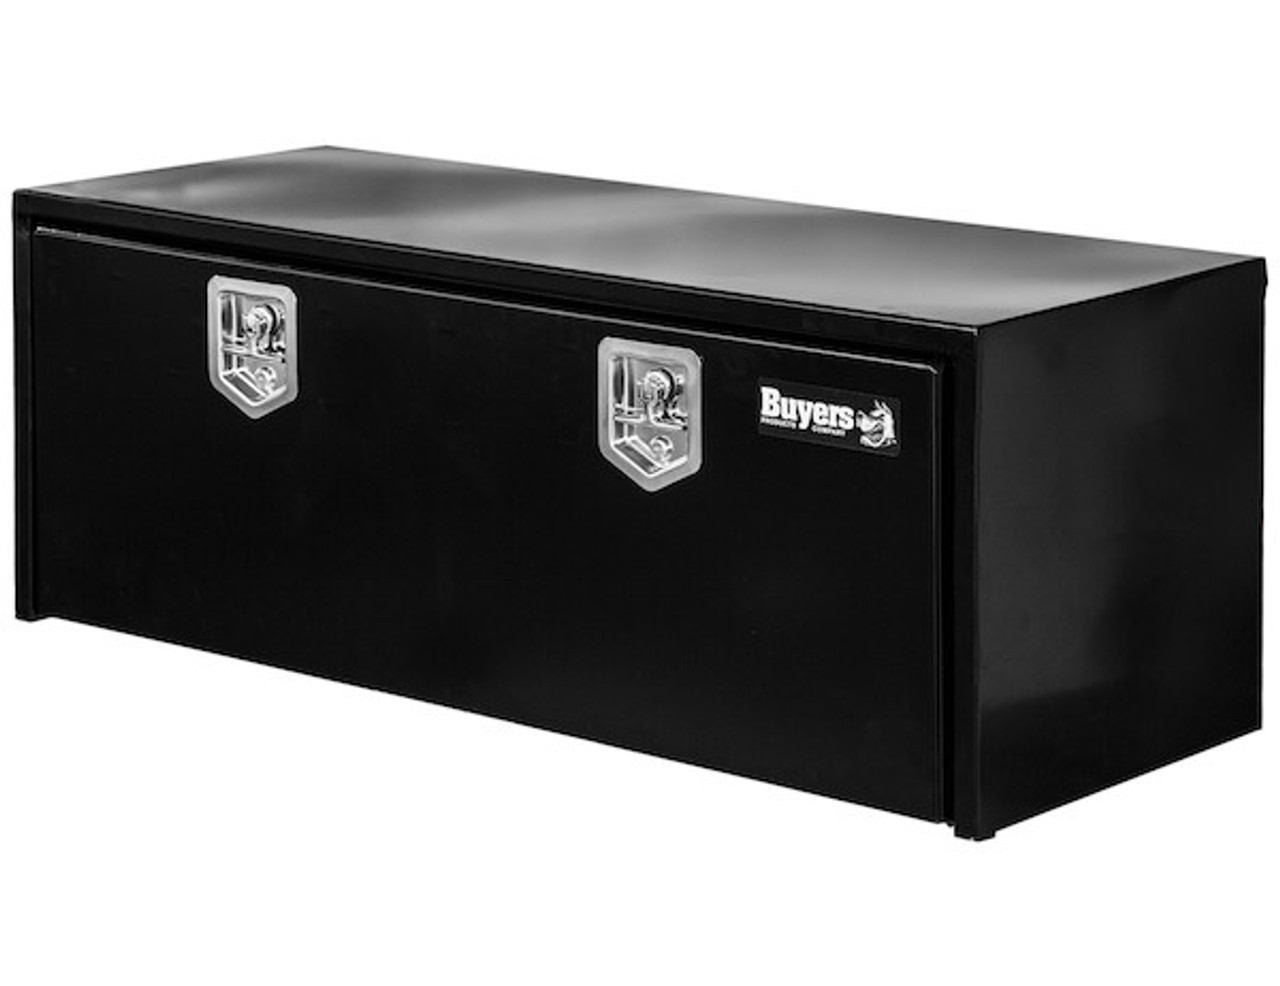 "1702310 BUYERS PRODUCTS BLACK STEEL UNDERBODY TRUCK TOOLBOX WITH T-LATCH 18""HX18""DX48""W"